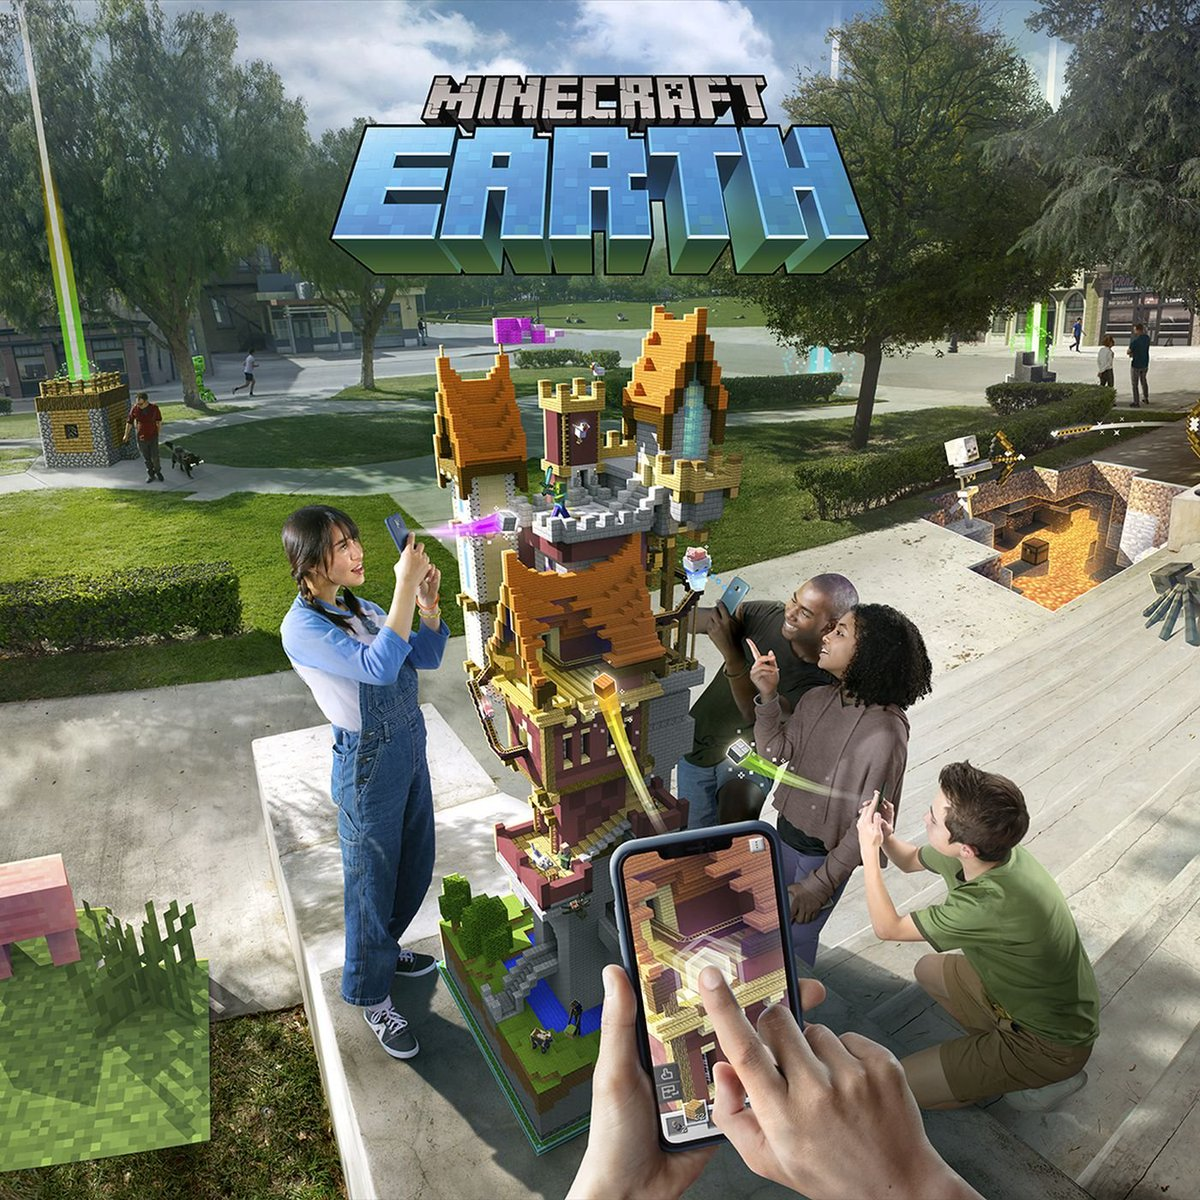 #PrimarySTEMChat A1 Minecraft Earth https://t.co/1lgT6ZF0au